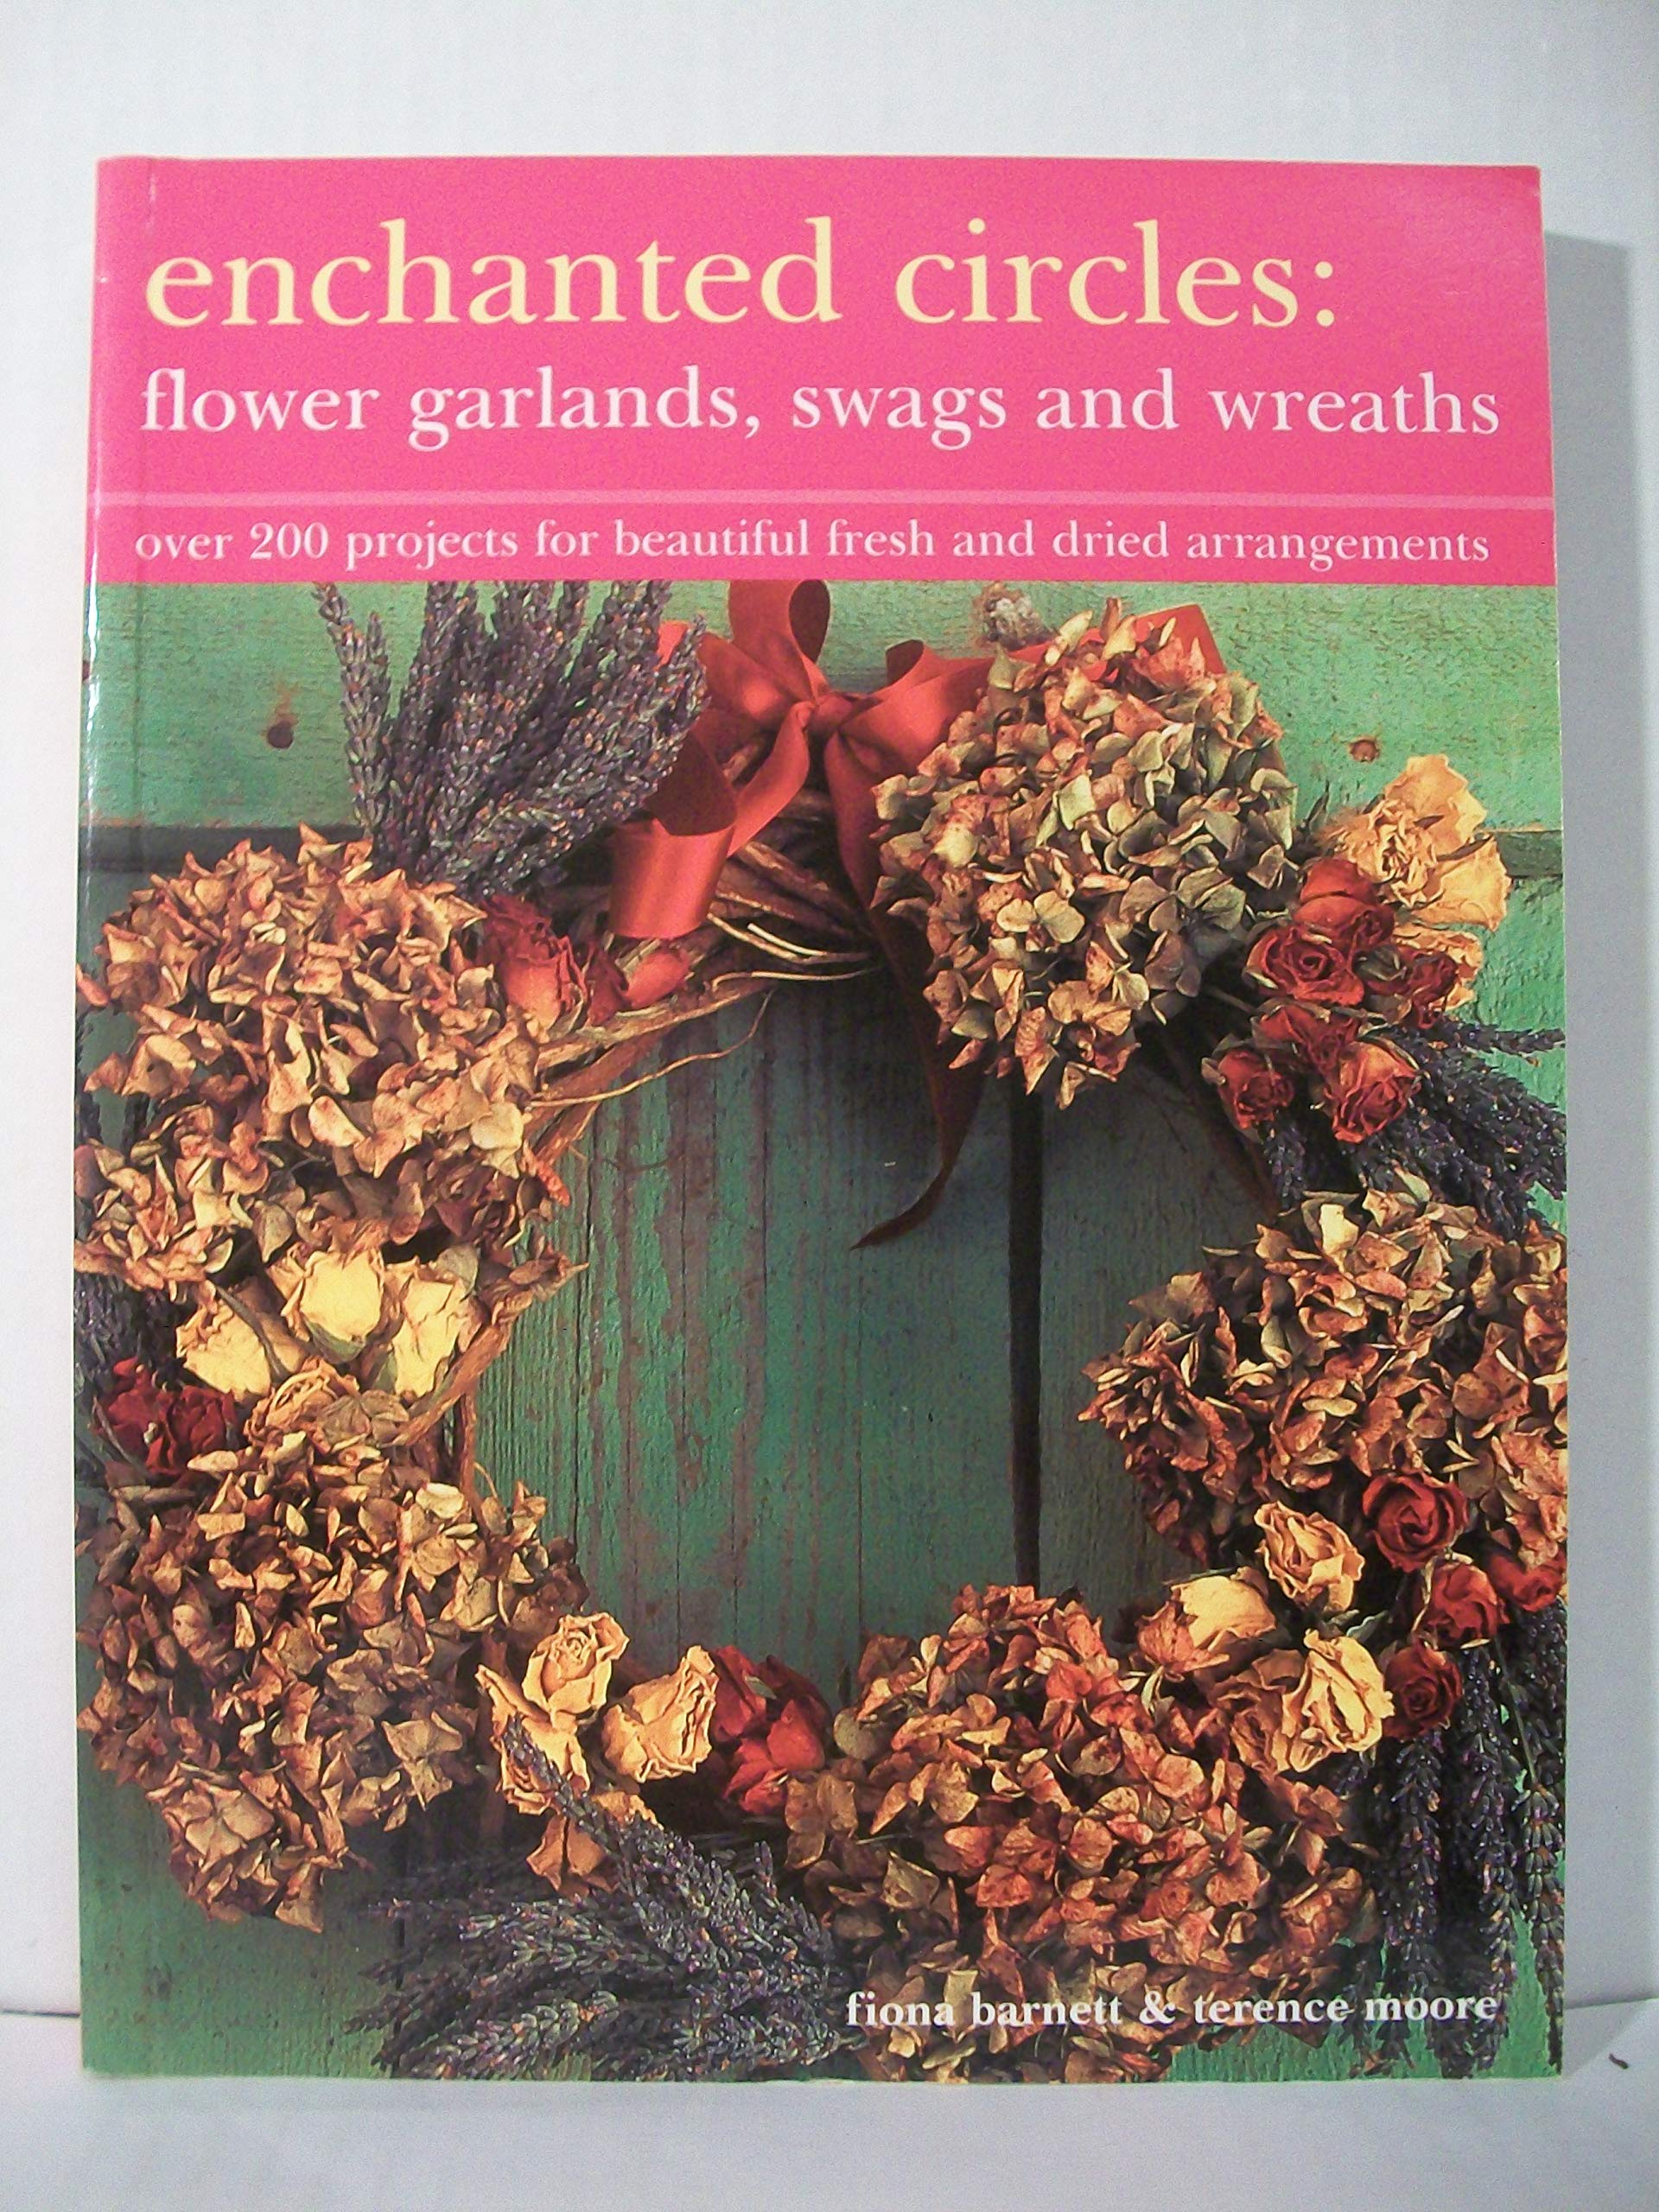 Enchanted Circles: Flower Garlands, Swags and Wreaths